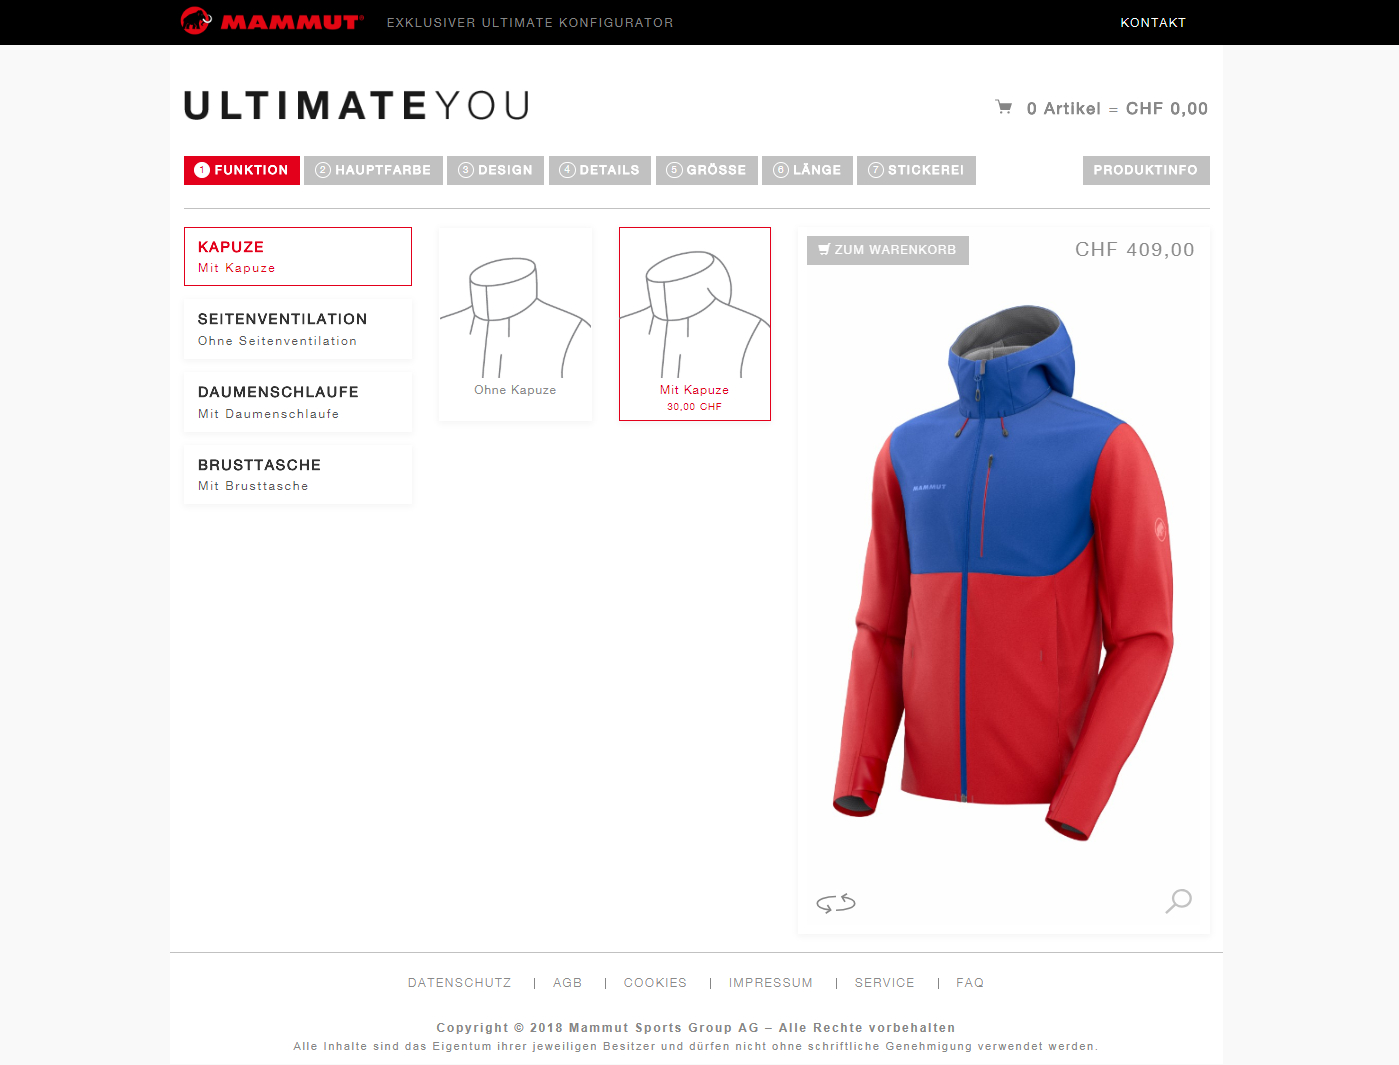 pod – Pattern on Demand® bei MAMMUT Sports Group AG im Einsatz